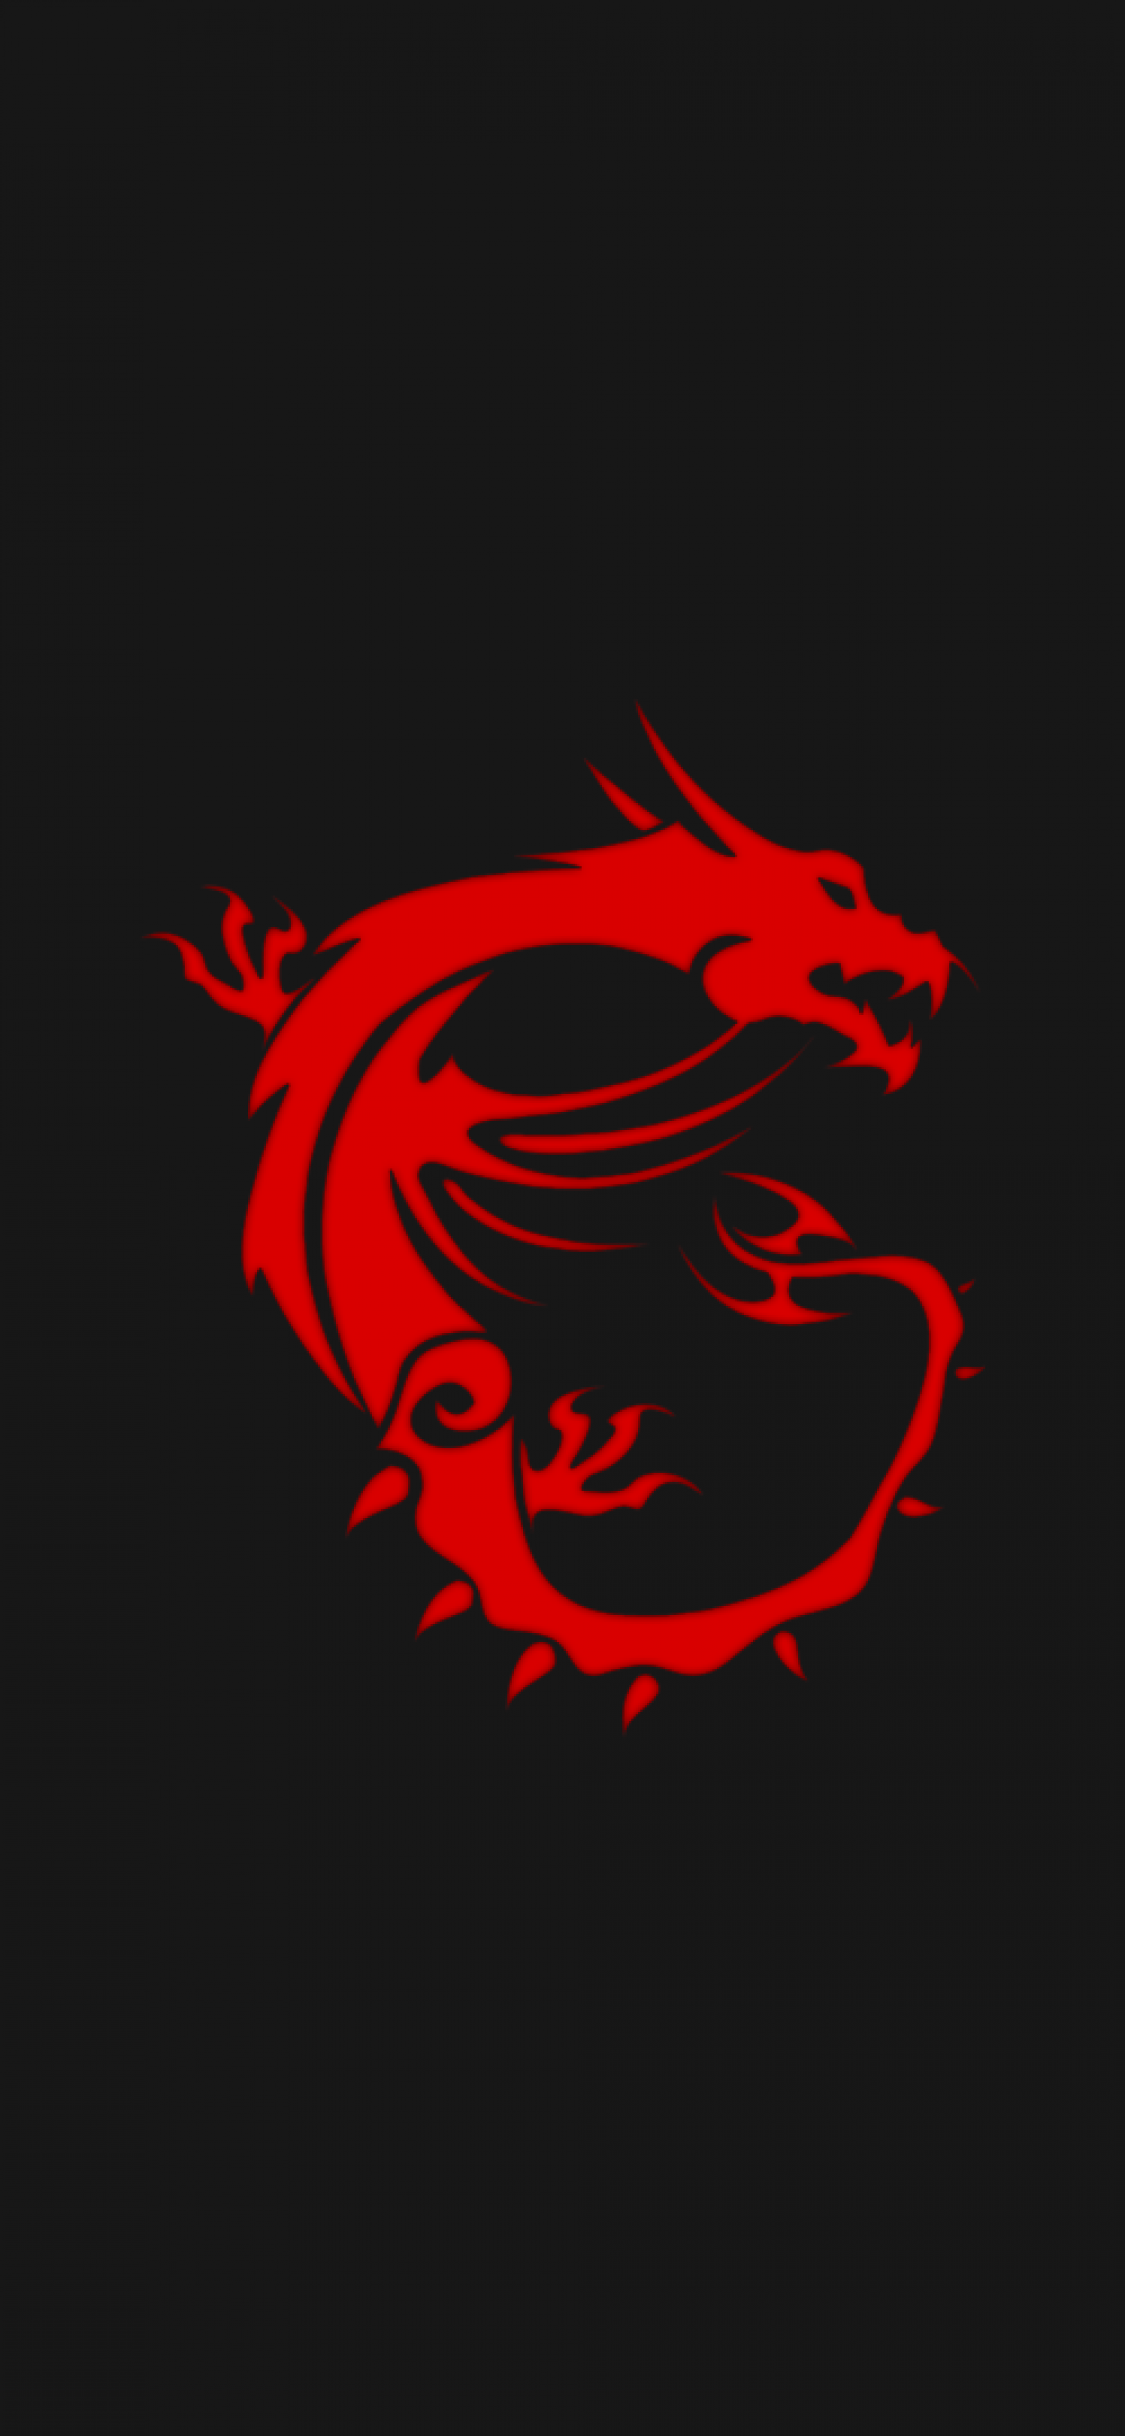 Download 1125x2436 Msi, Dragon, Logo Wallpapers for iPhone X